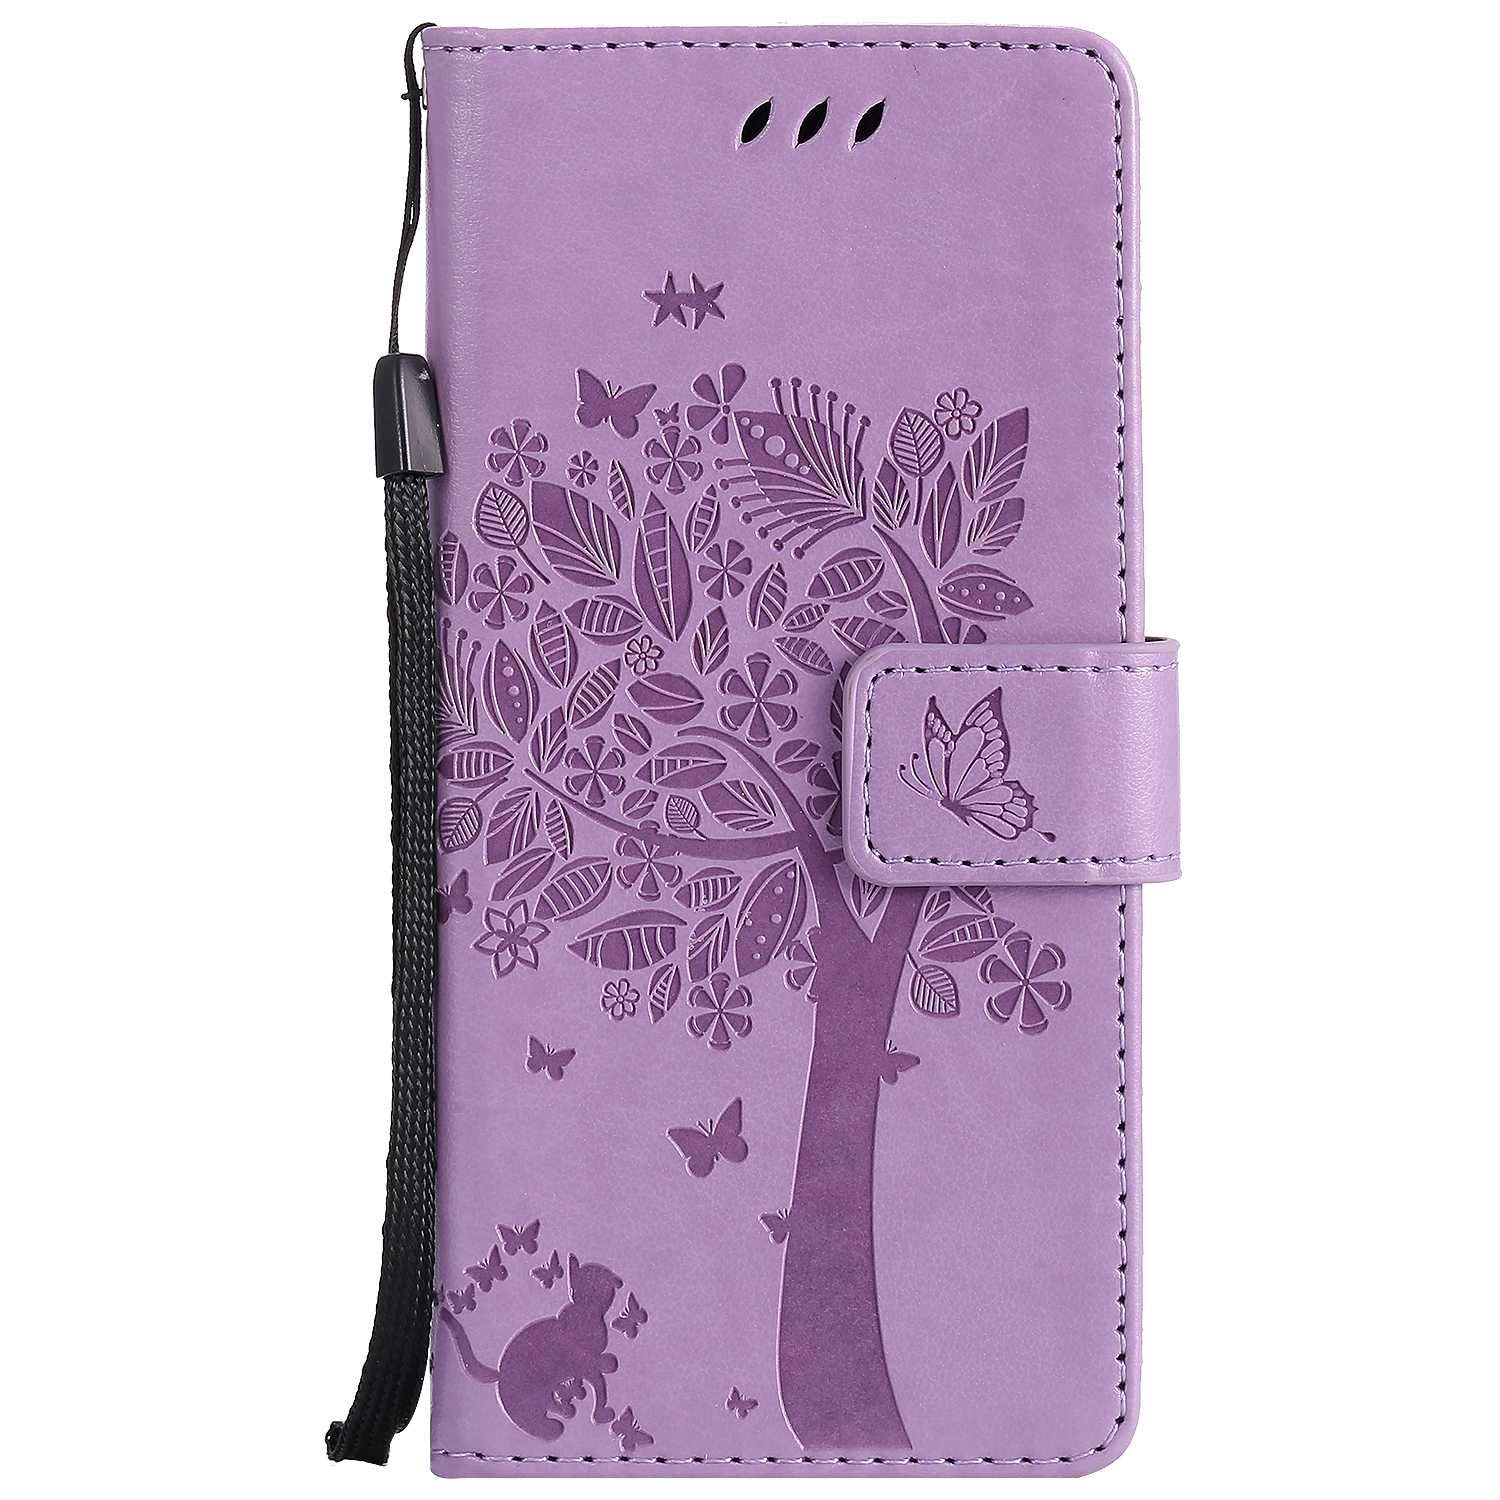 Sony Xperia XA Wallet Case, UNEXTATI Leather Flip Cover Case with Kickstand Feature for Sony Xperia XA (Light Purple #12)